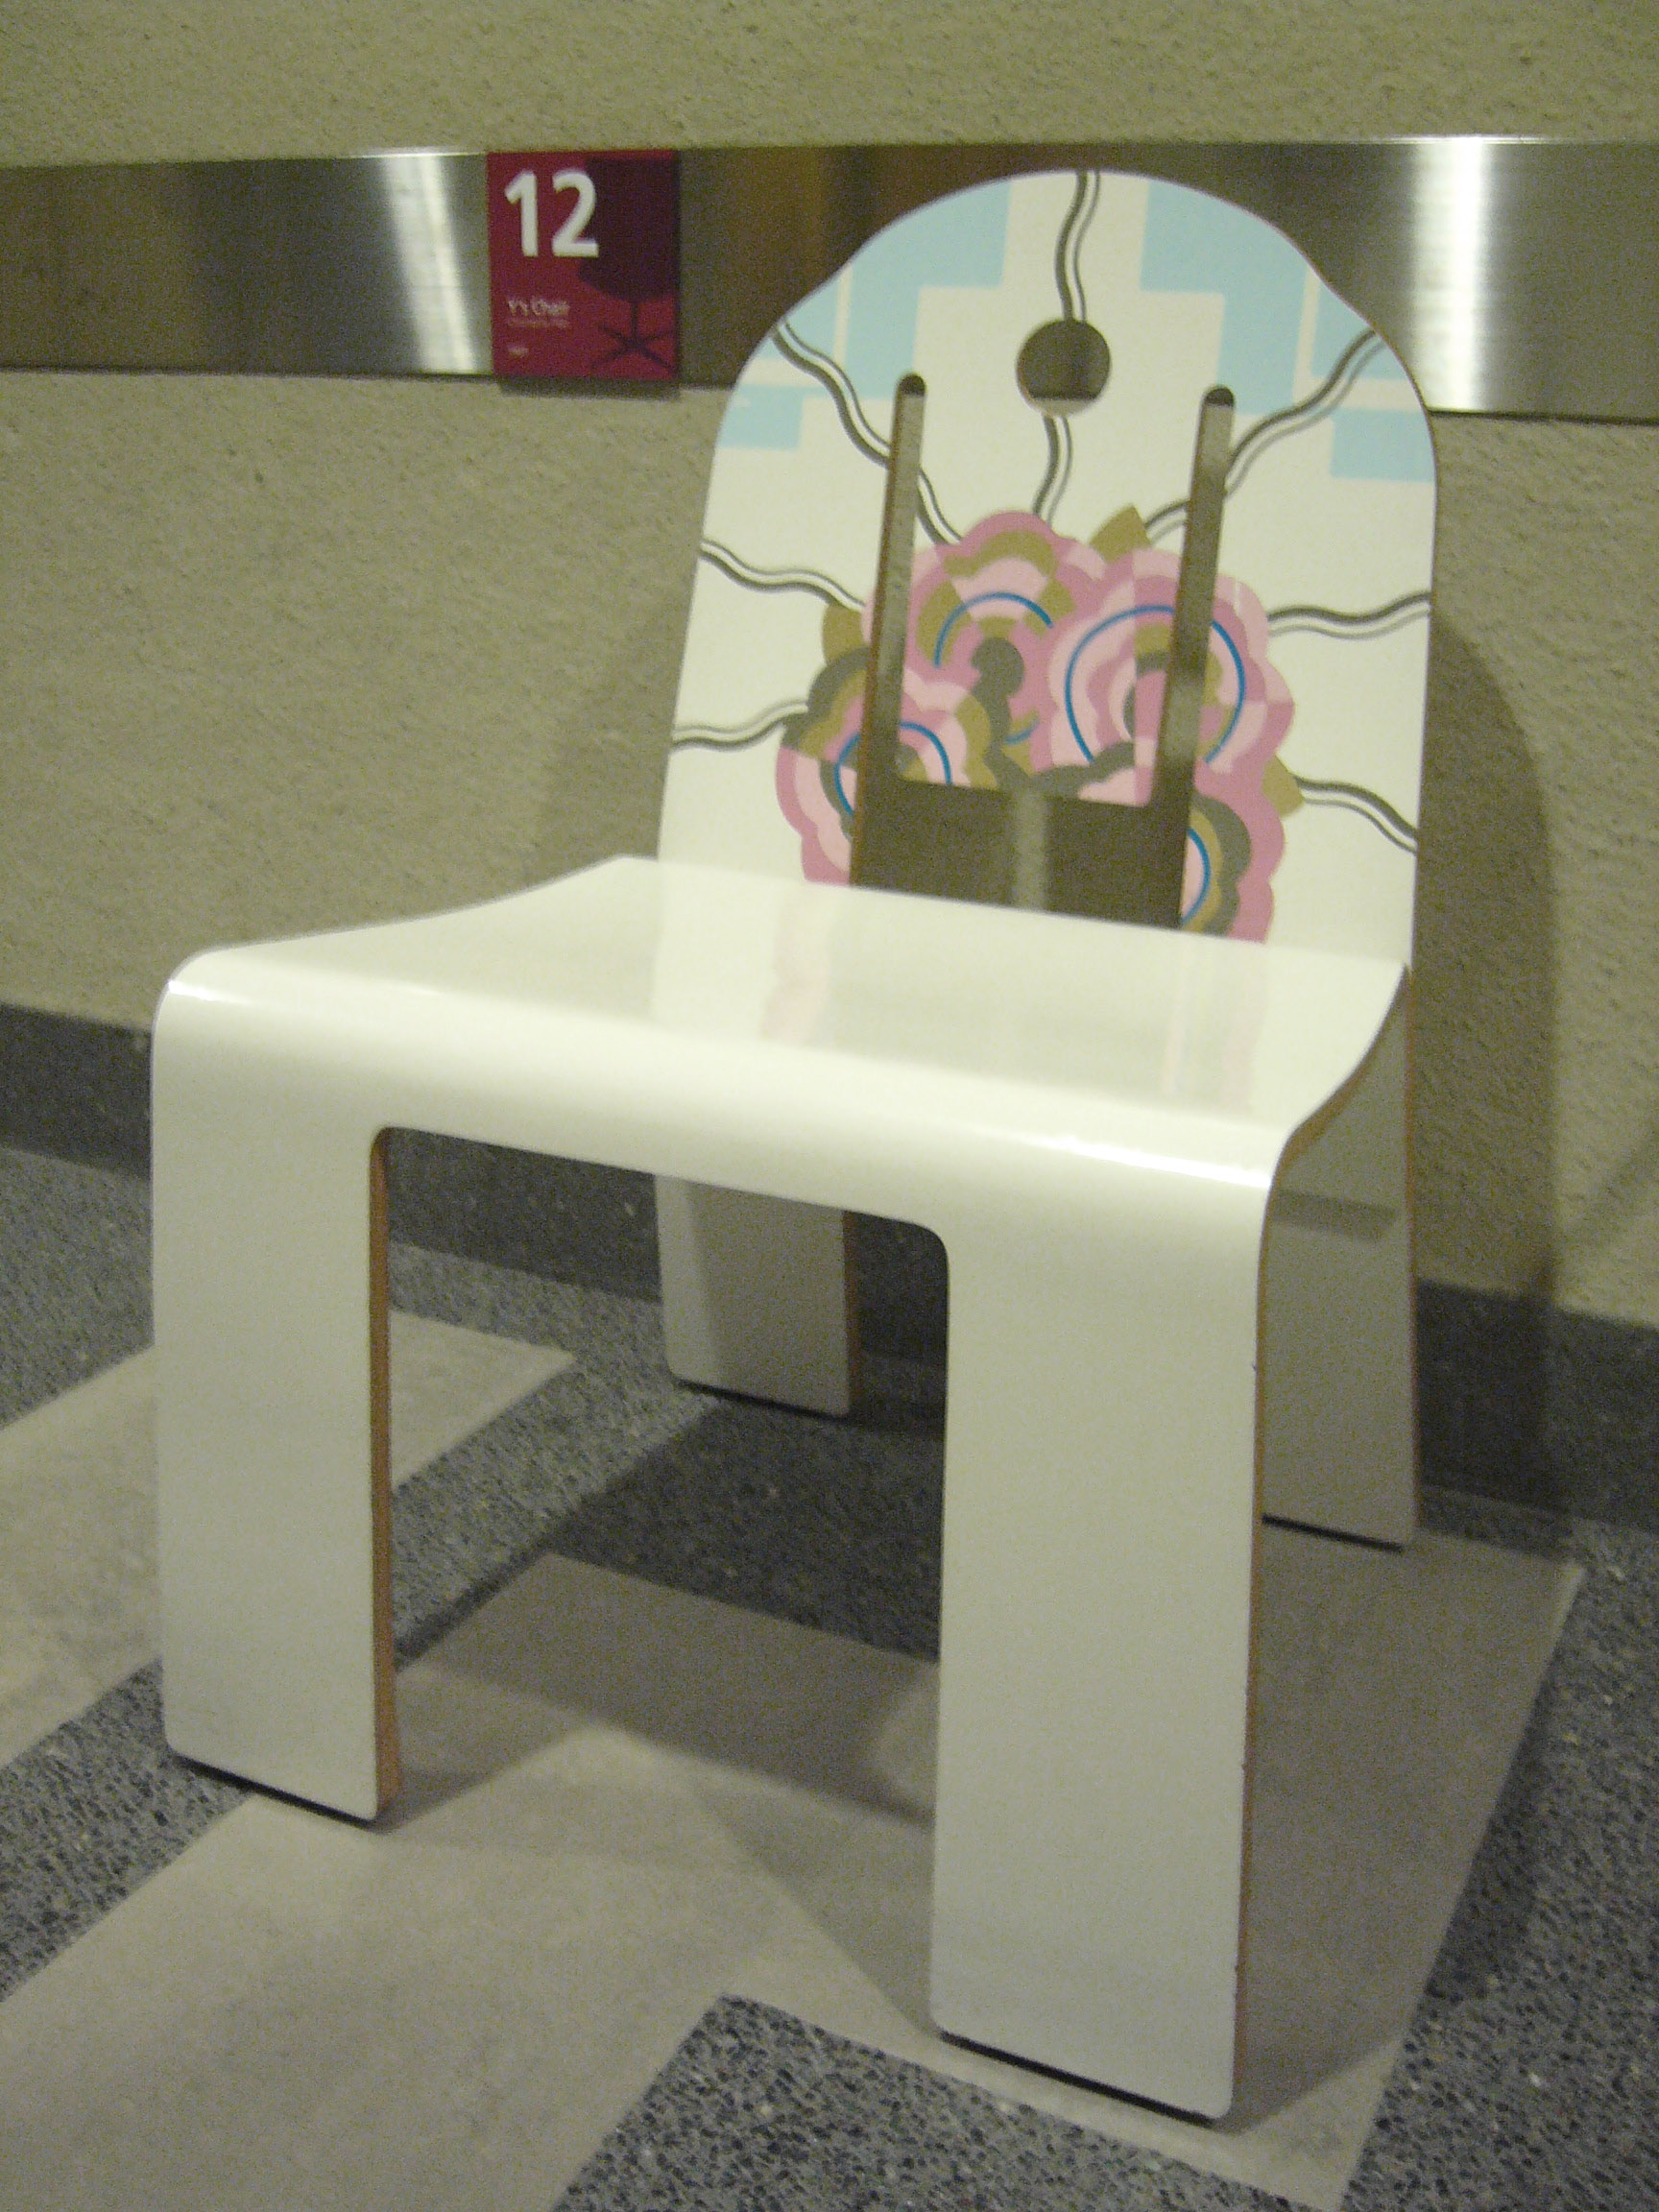 20th Century Masterpieces : : Art Deco 665 Chair by Robert Venturi, 1978 | from drezier's blog [20th Century Masterpieces : : Art Deco 665 Chair] dated 2017/8/22